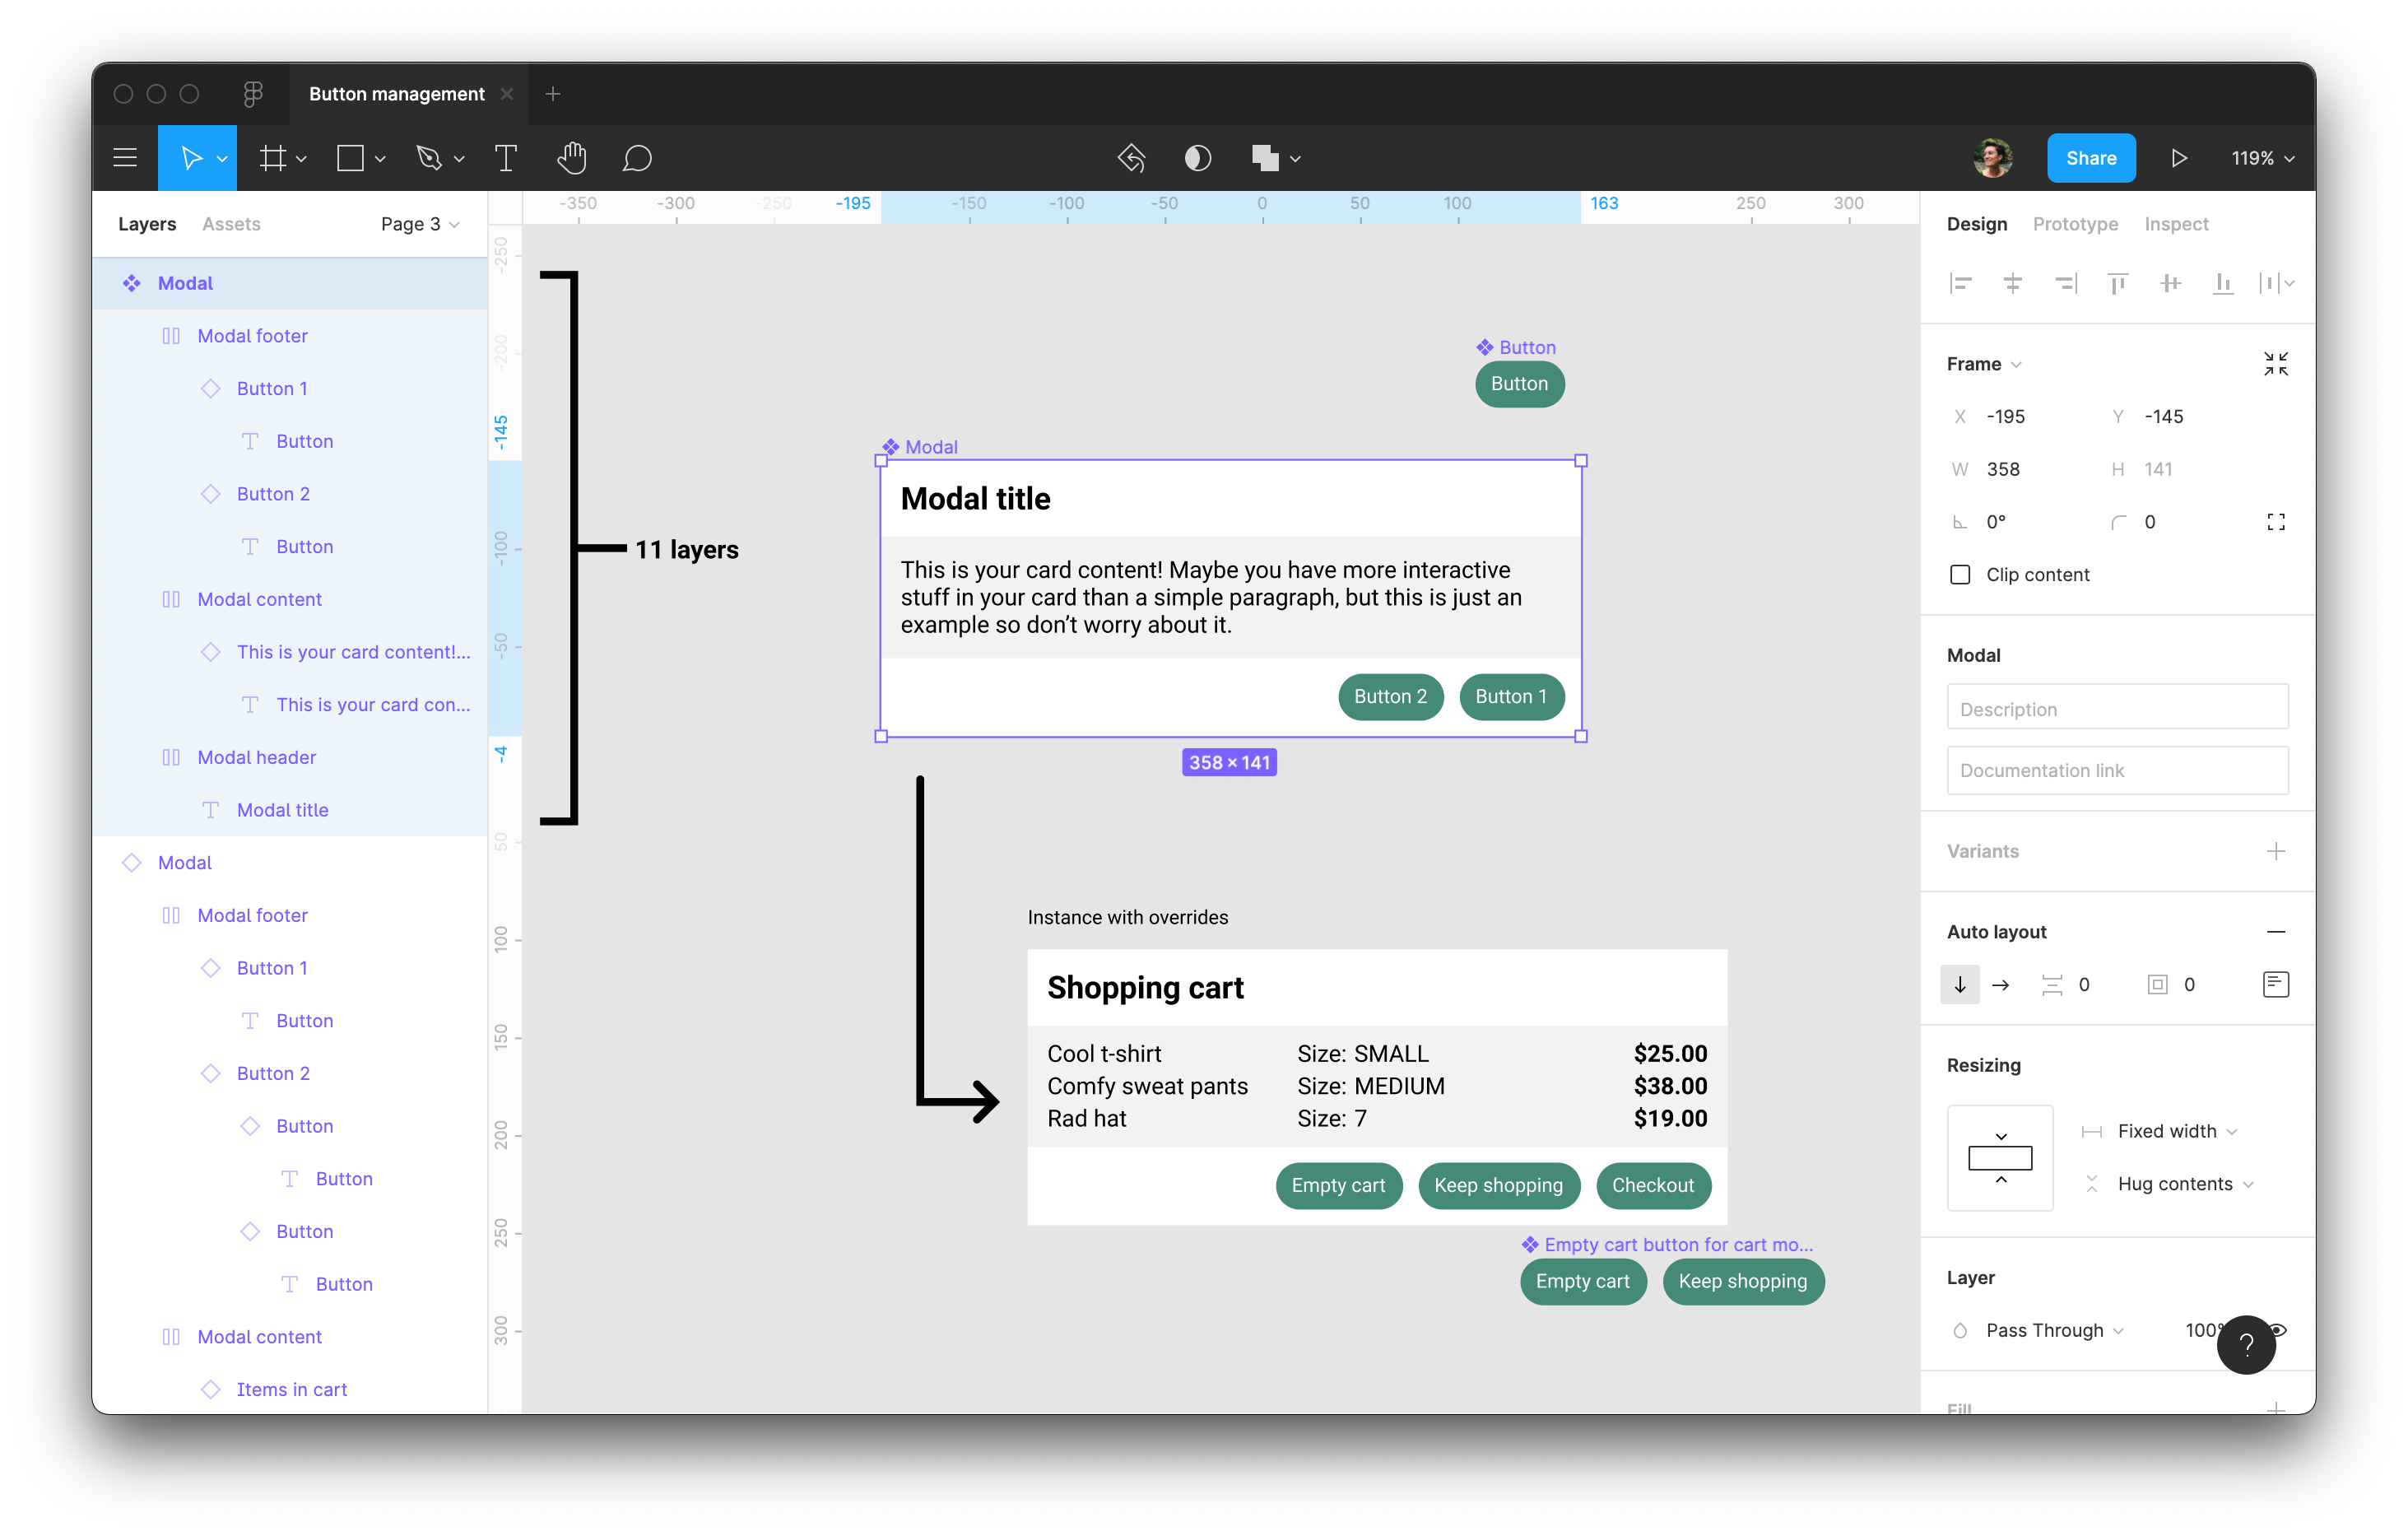 The main modal component's layers expanded to revela all 11 layers